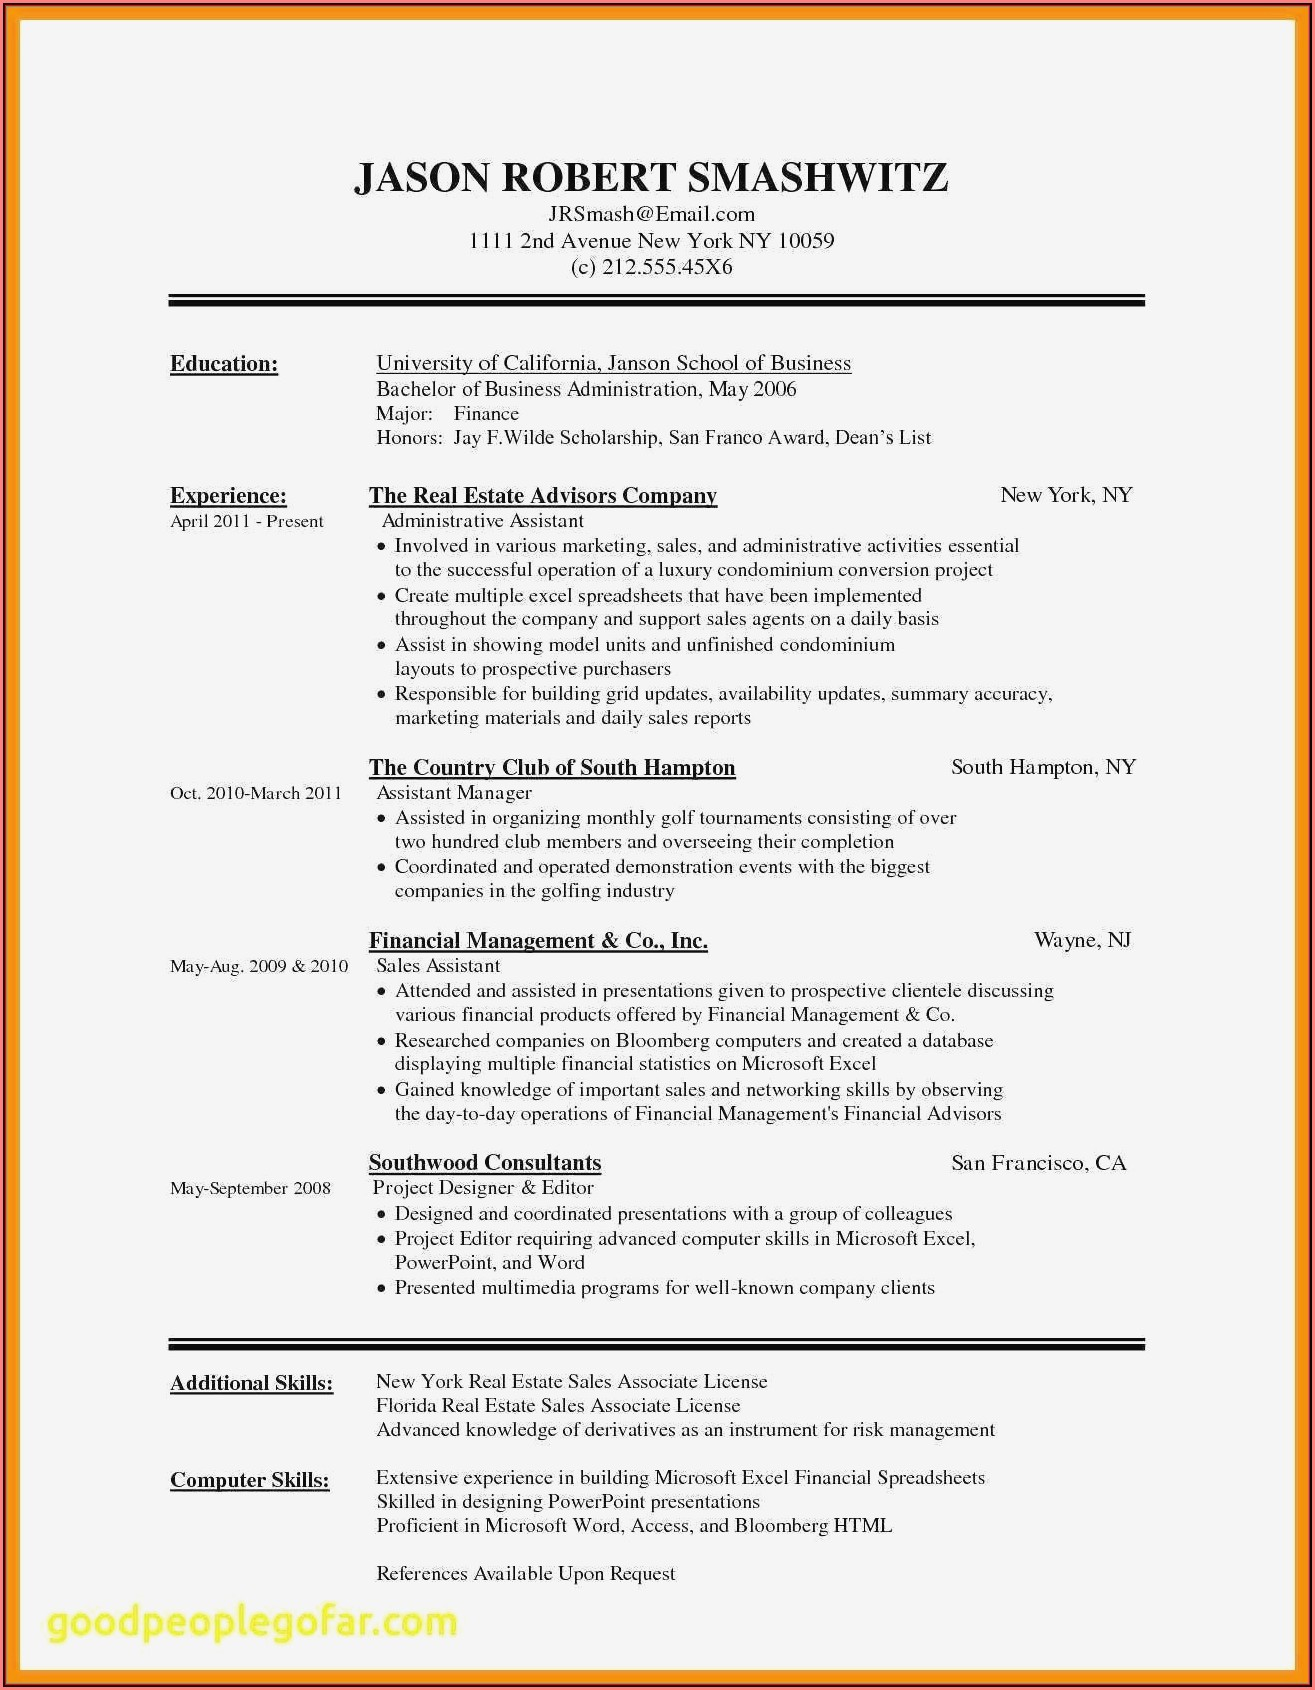 Free Chronological Resume Template Word